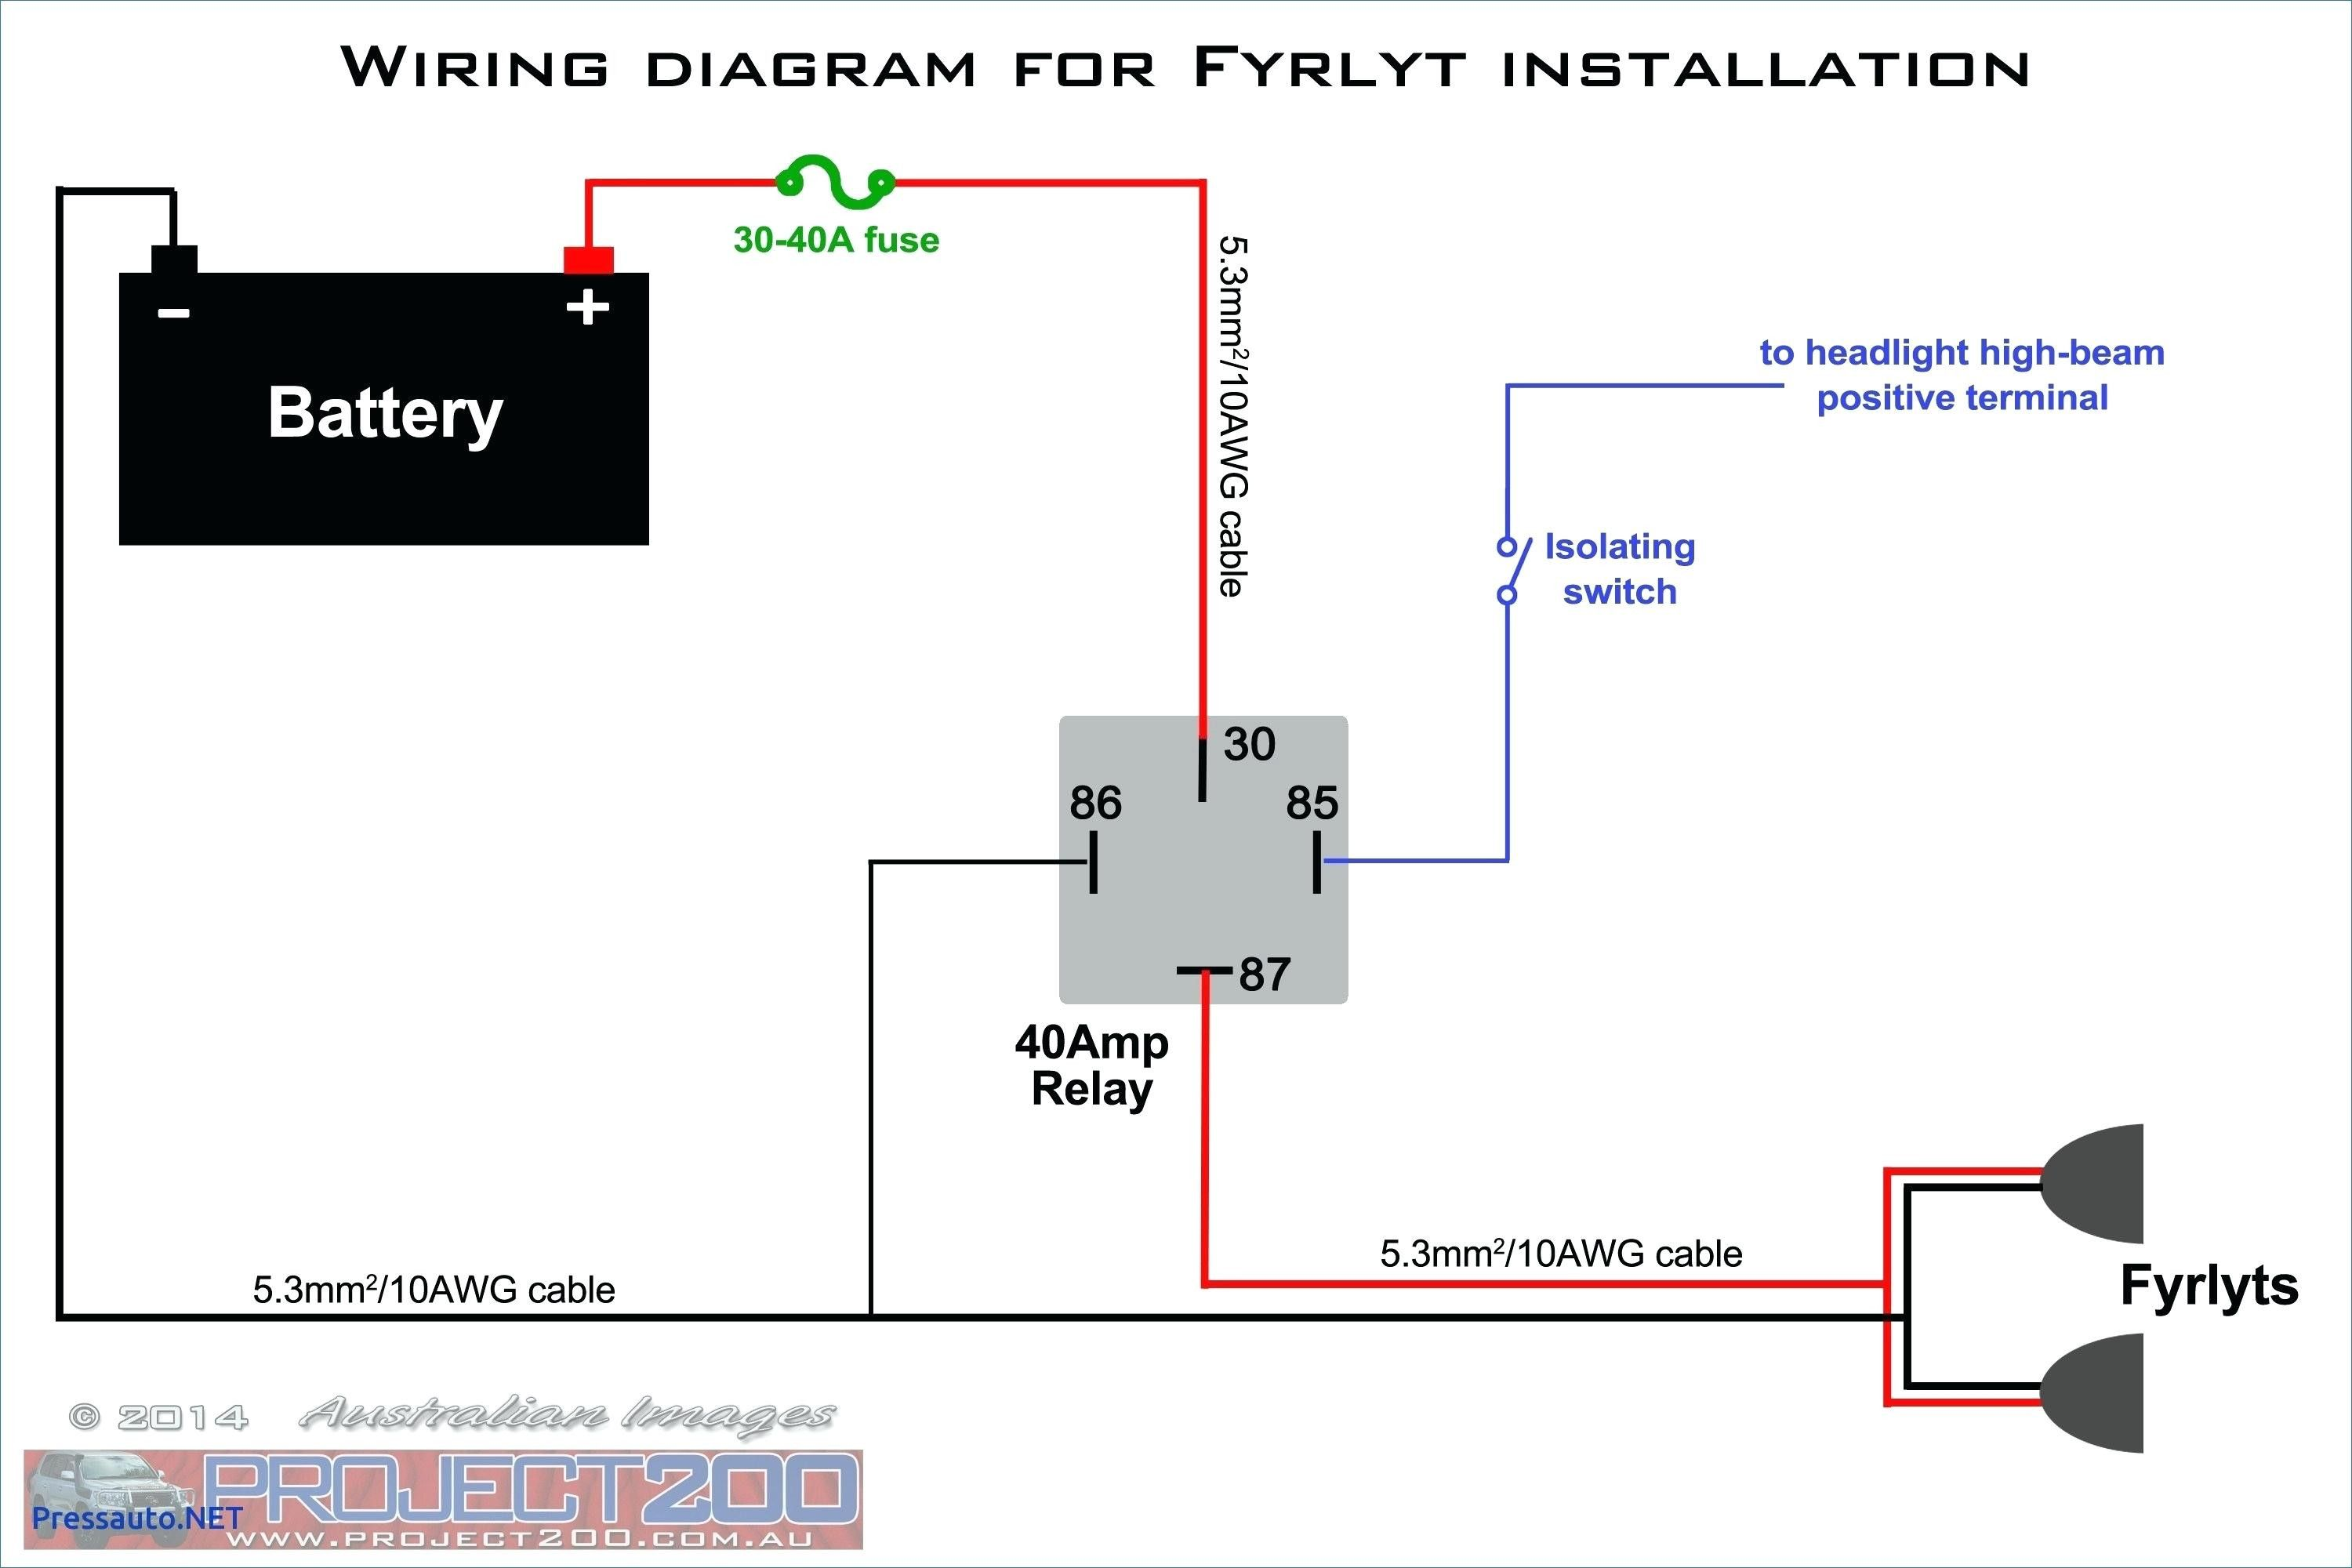 Surprising Wiring Diagram For Driving Lights With A Relay Basic Electronics Wiring Digital Resources Cettecompassionincorg